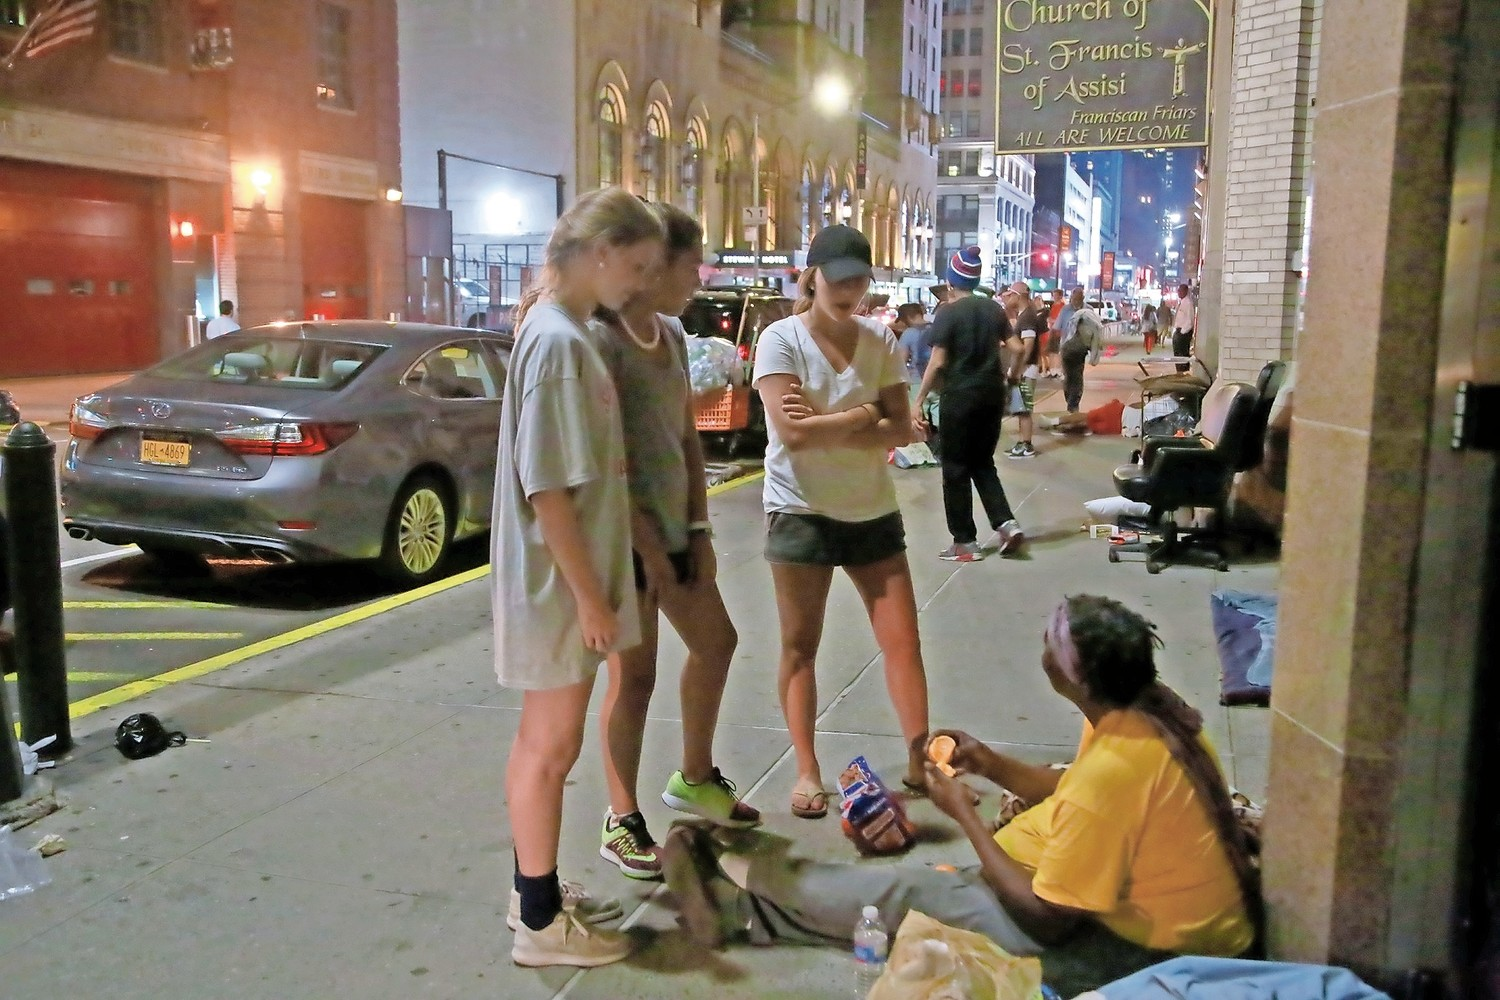 Linda Freel, left, Sydney Aviles and Erin Freehill met with a homeless woman in the city.